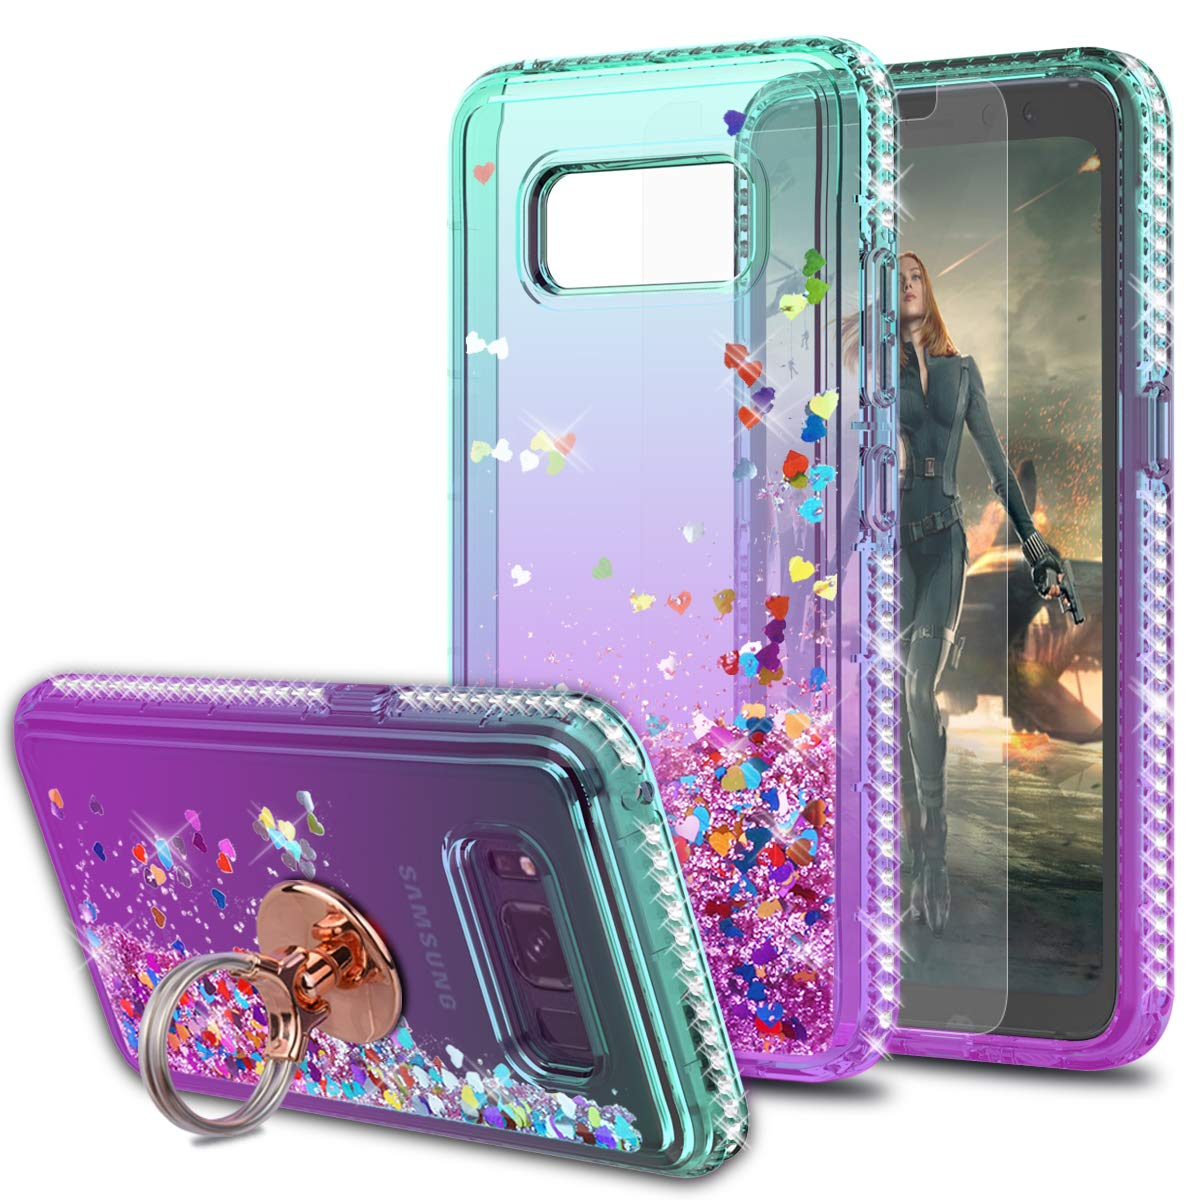 Galaxy S8 Active Case with HD Screen Protector with Ring Holder,KaiMai Glitter Moving Quicksand Clear Cute Shiny Girls Women Phone Case for Galaxy S8 Active-Aqua/Purple Ring by KaiMai